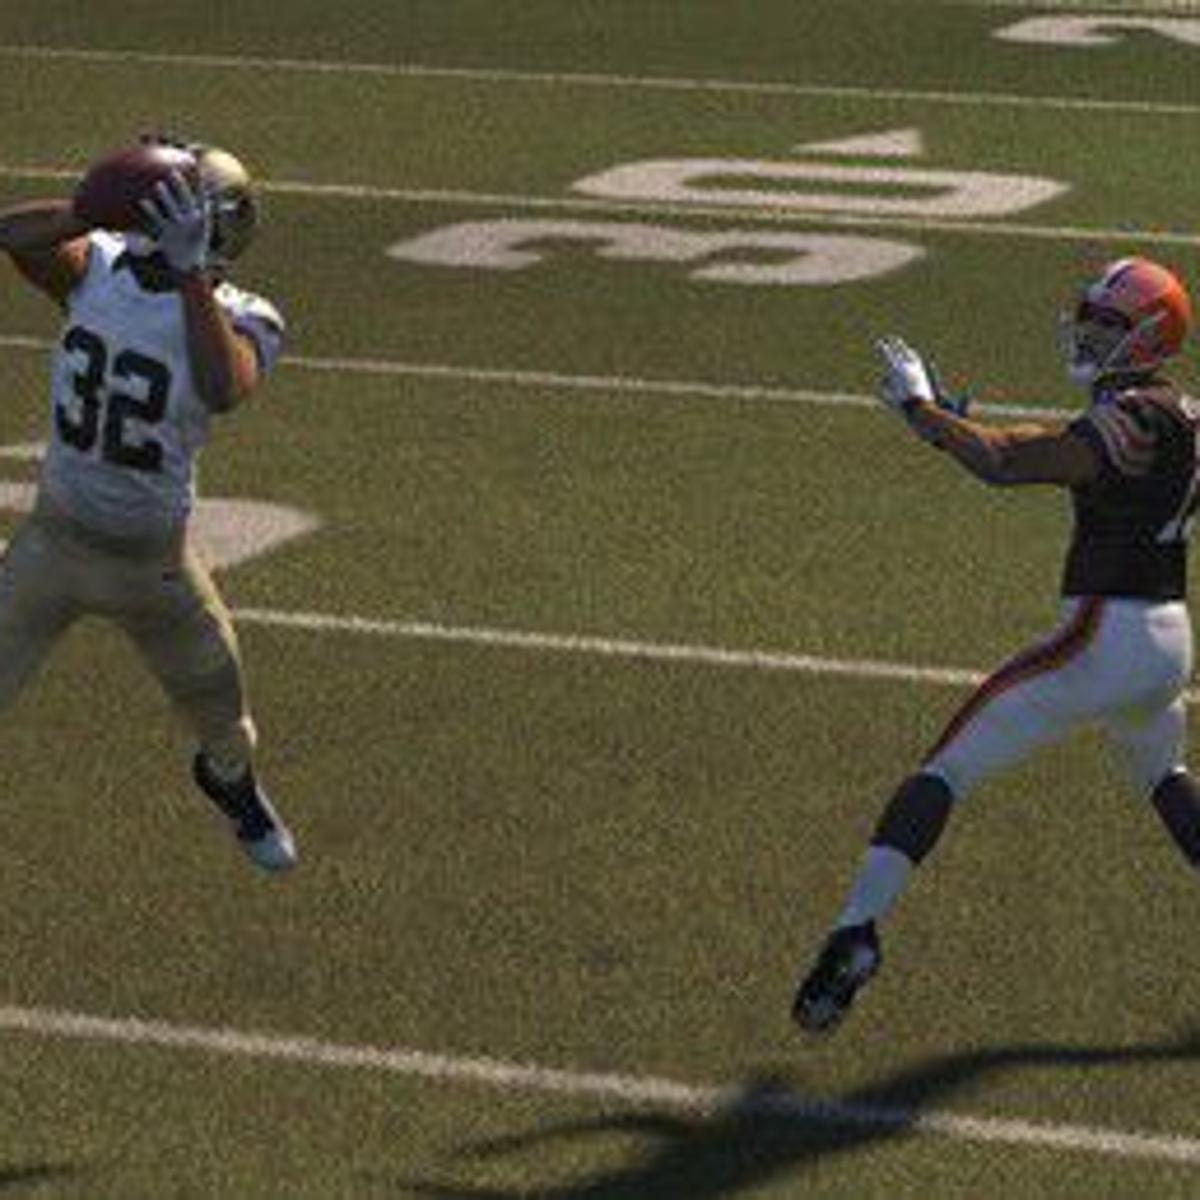 Madden Nfl 15 Simulation Has New Orleans Saints Offense Sputtering Losing 16 13 To Cleveland Browns Saints Nola Com